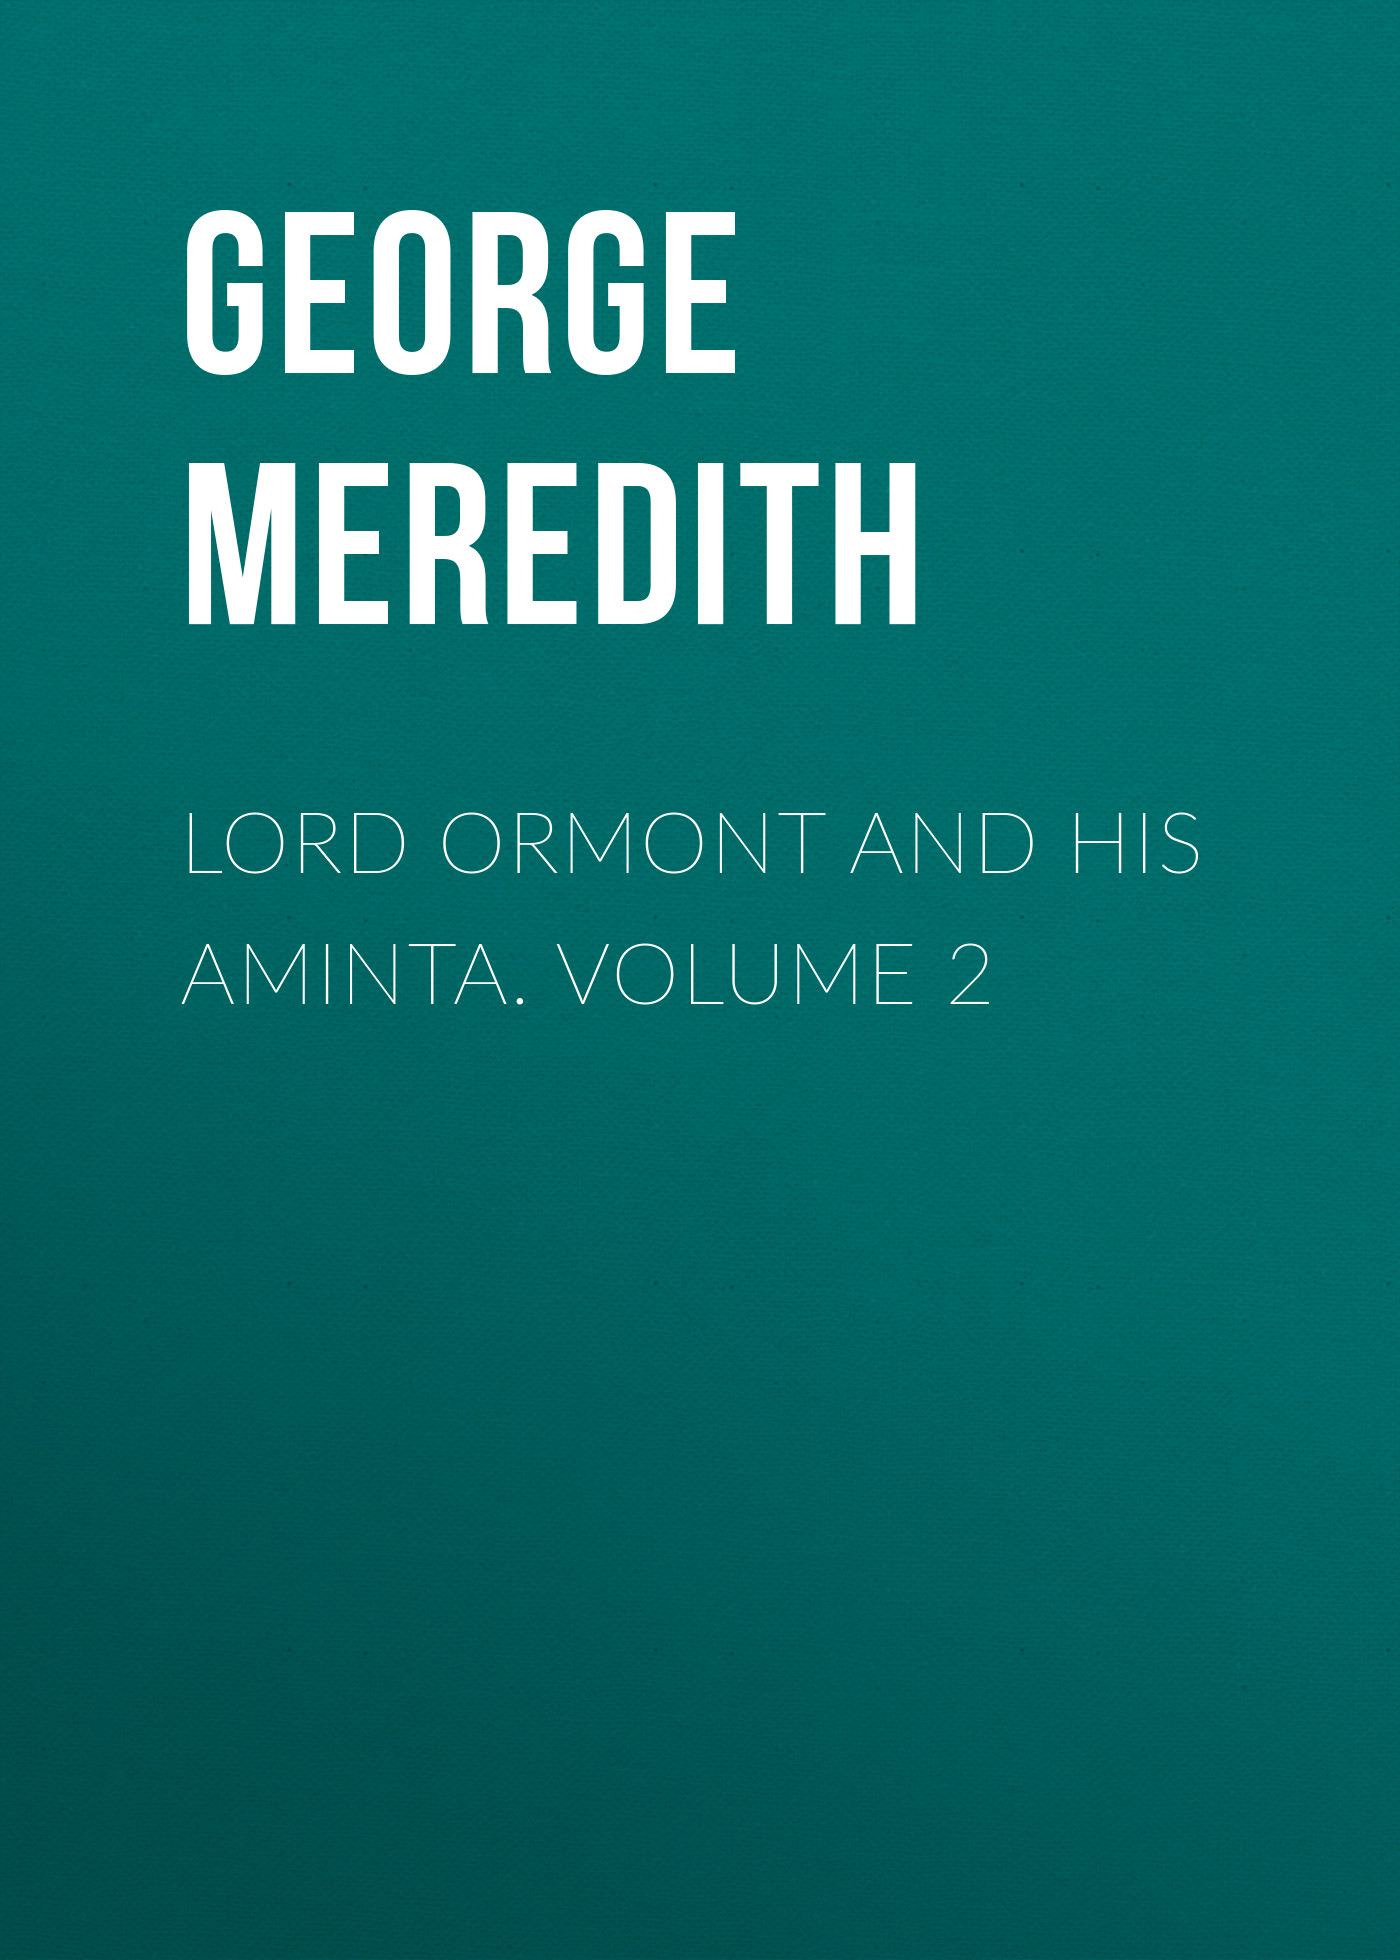 George Meredith Lord Ormont and His Aminta. Volume 2 george meredith lord ormont and his aminta volume 2